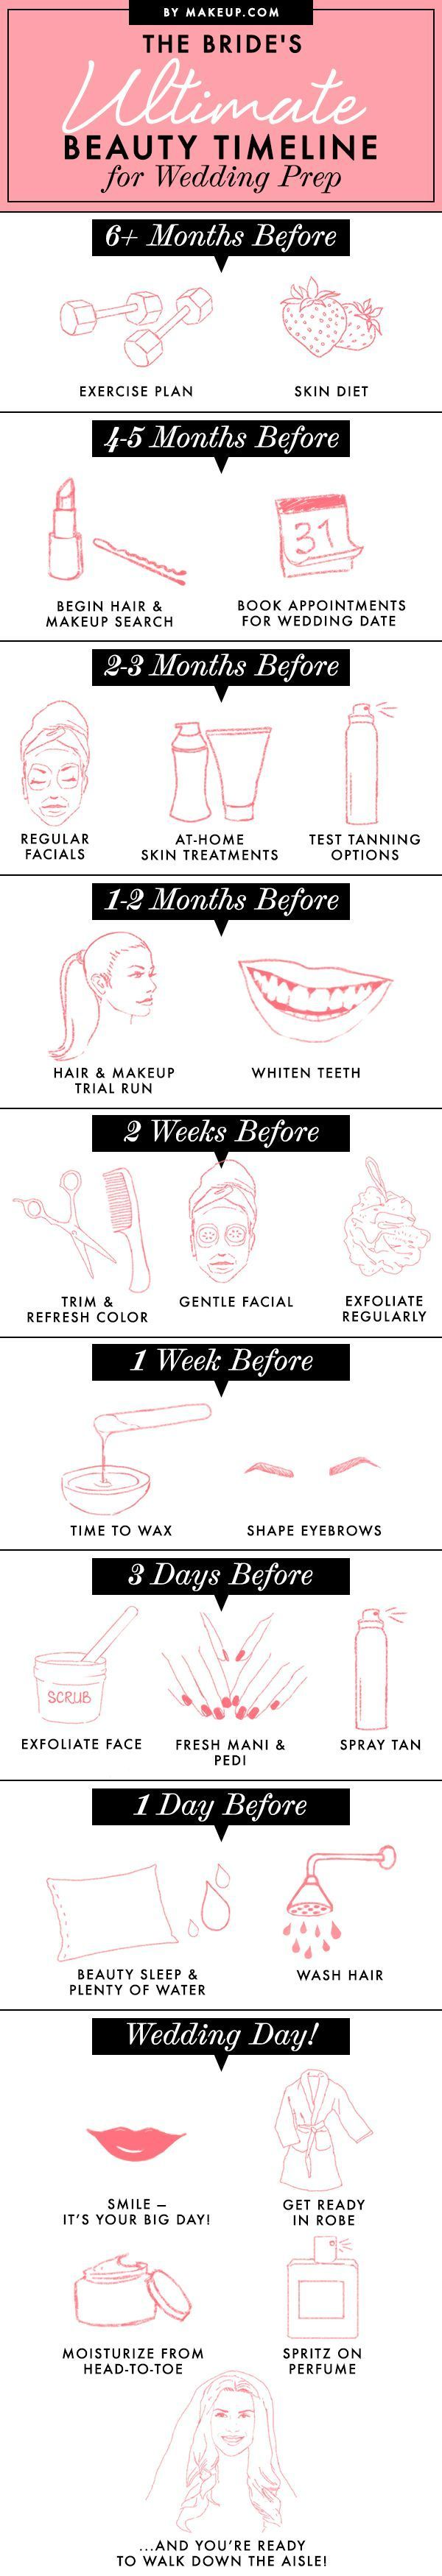 So, you're engaged. Now what?! Our bridal beauty timeline will get you on track to looking extra flawless on your big day!